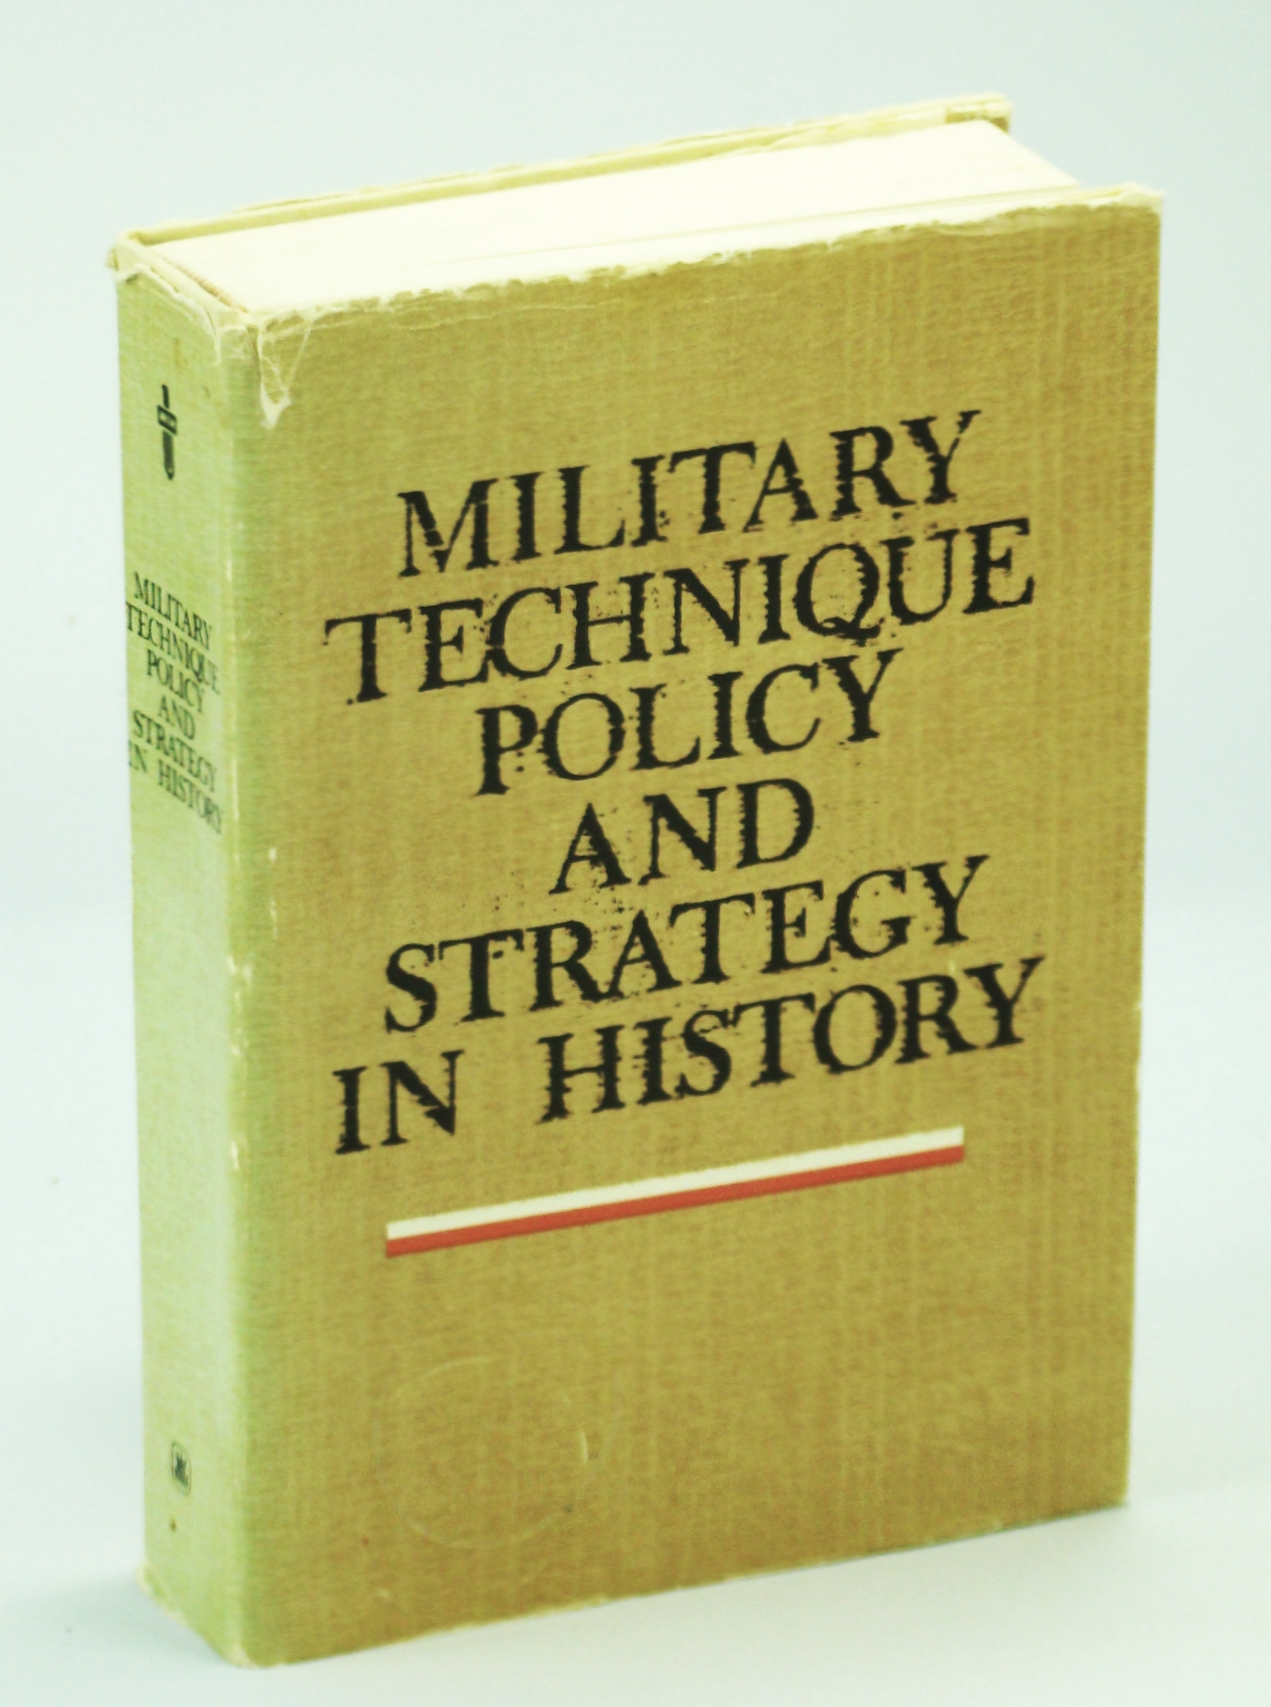 Image for Military Technique Policy and Strategy in History (Military Historical Institute)